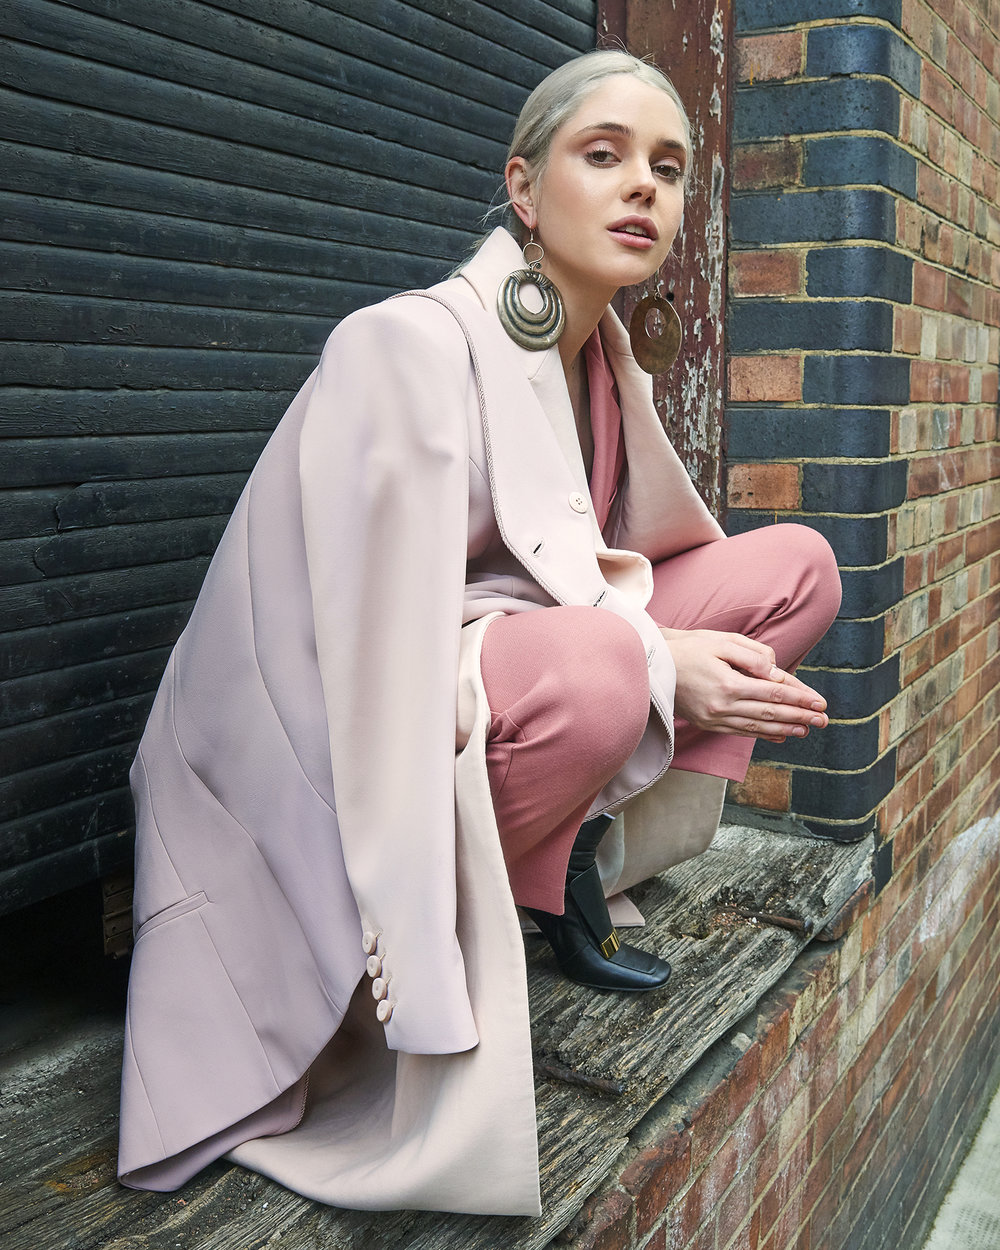 Suit  Theory   Coat  Katharine Hamnett   Top Jacket  Pinko   Earrings  Pebble London   Shoes  Sergio Rossi